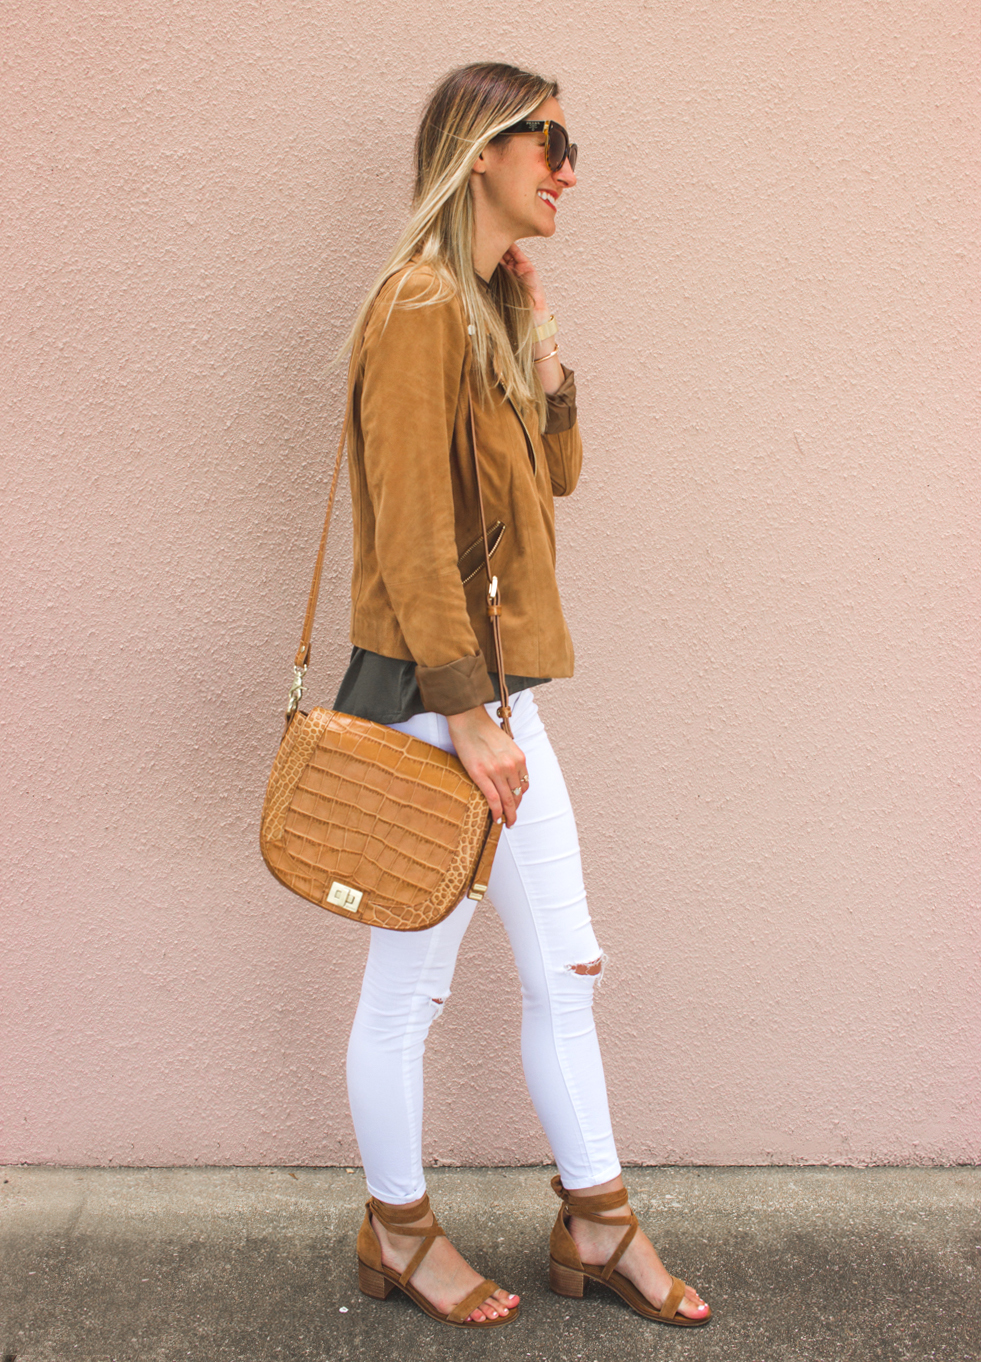 livvyland-blog-olivia-watson-boho-ootd-nordstrom-anniversary-sale-must-haves-what-to-buy-suede-tan-jacket-fall-summer-outfit-cluse-gold-watch-7